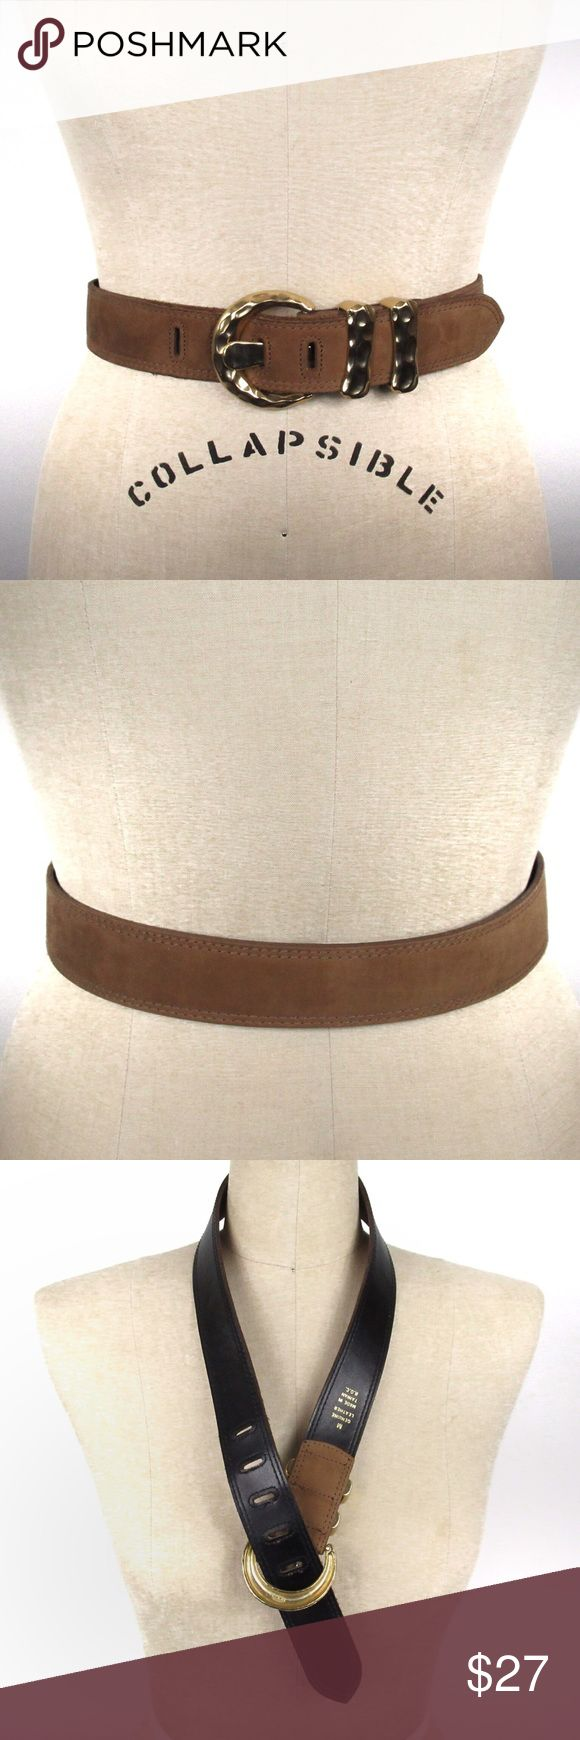 Express Vintage Leather Belt Hammered Gold Buckle Express vintage brown genuine leather (looks more like suede) with gorgeous gold hammered metal buckle. Approx 1.5in Width, 35.5in Total L, 28in L (to Shortest Hole), 32in L (to Longest Hole) with 5 holes- in excellent vintage condition. Size M, however I believe it to fit more like a S/M. No trades or modeling, offers welcomed. Express Accessories Belts